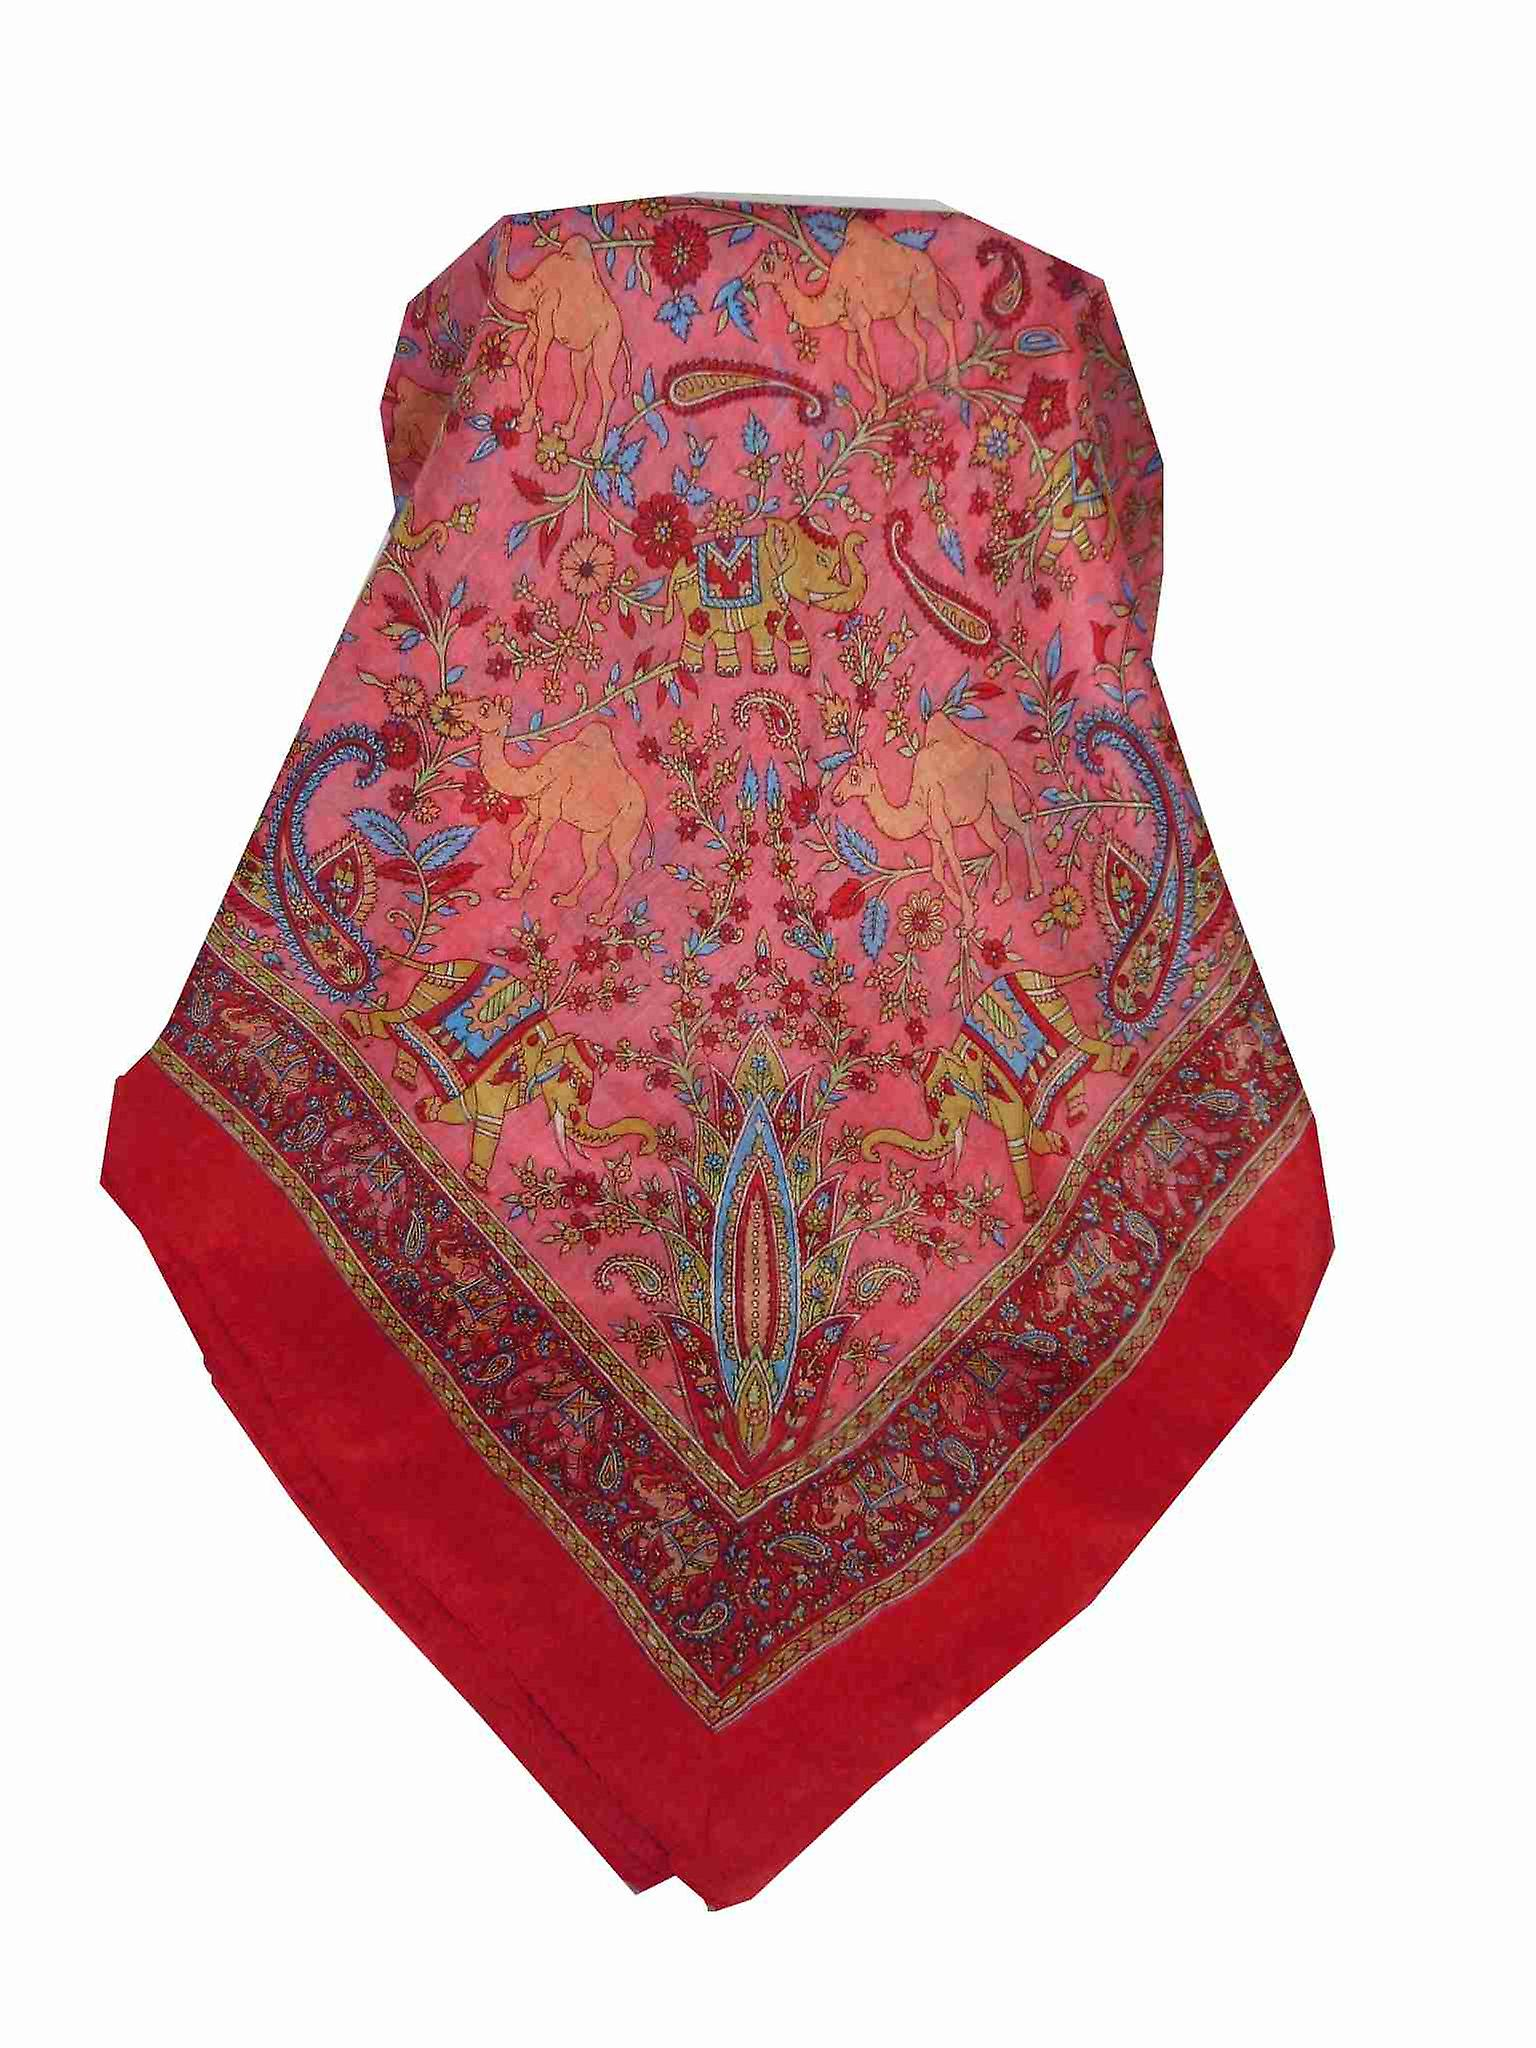 Mulberry Silk Traditional Square Scarf Goral Flame by Pashmina & Silk